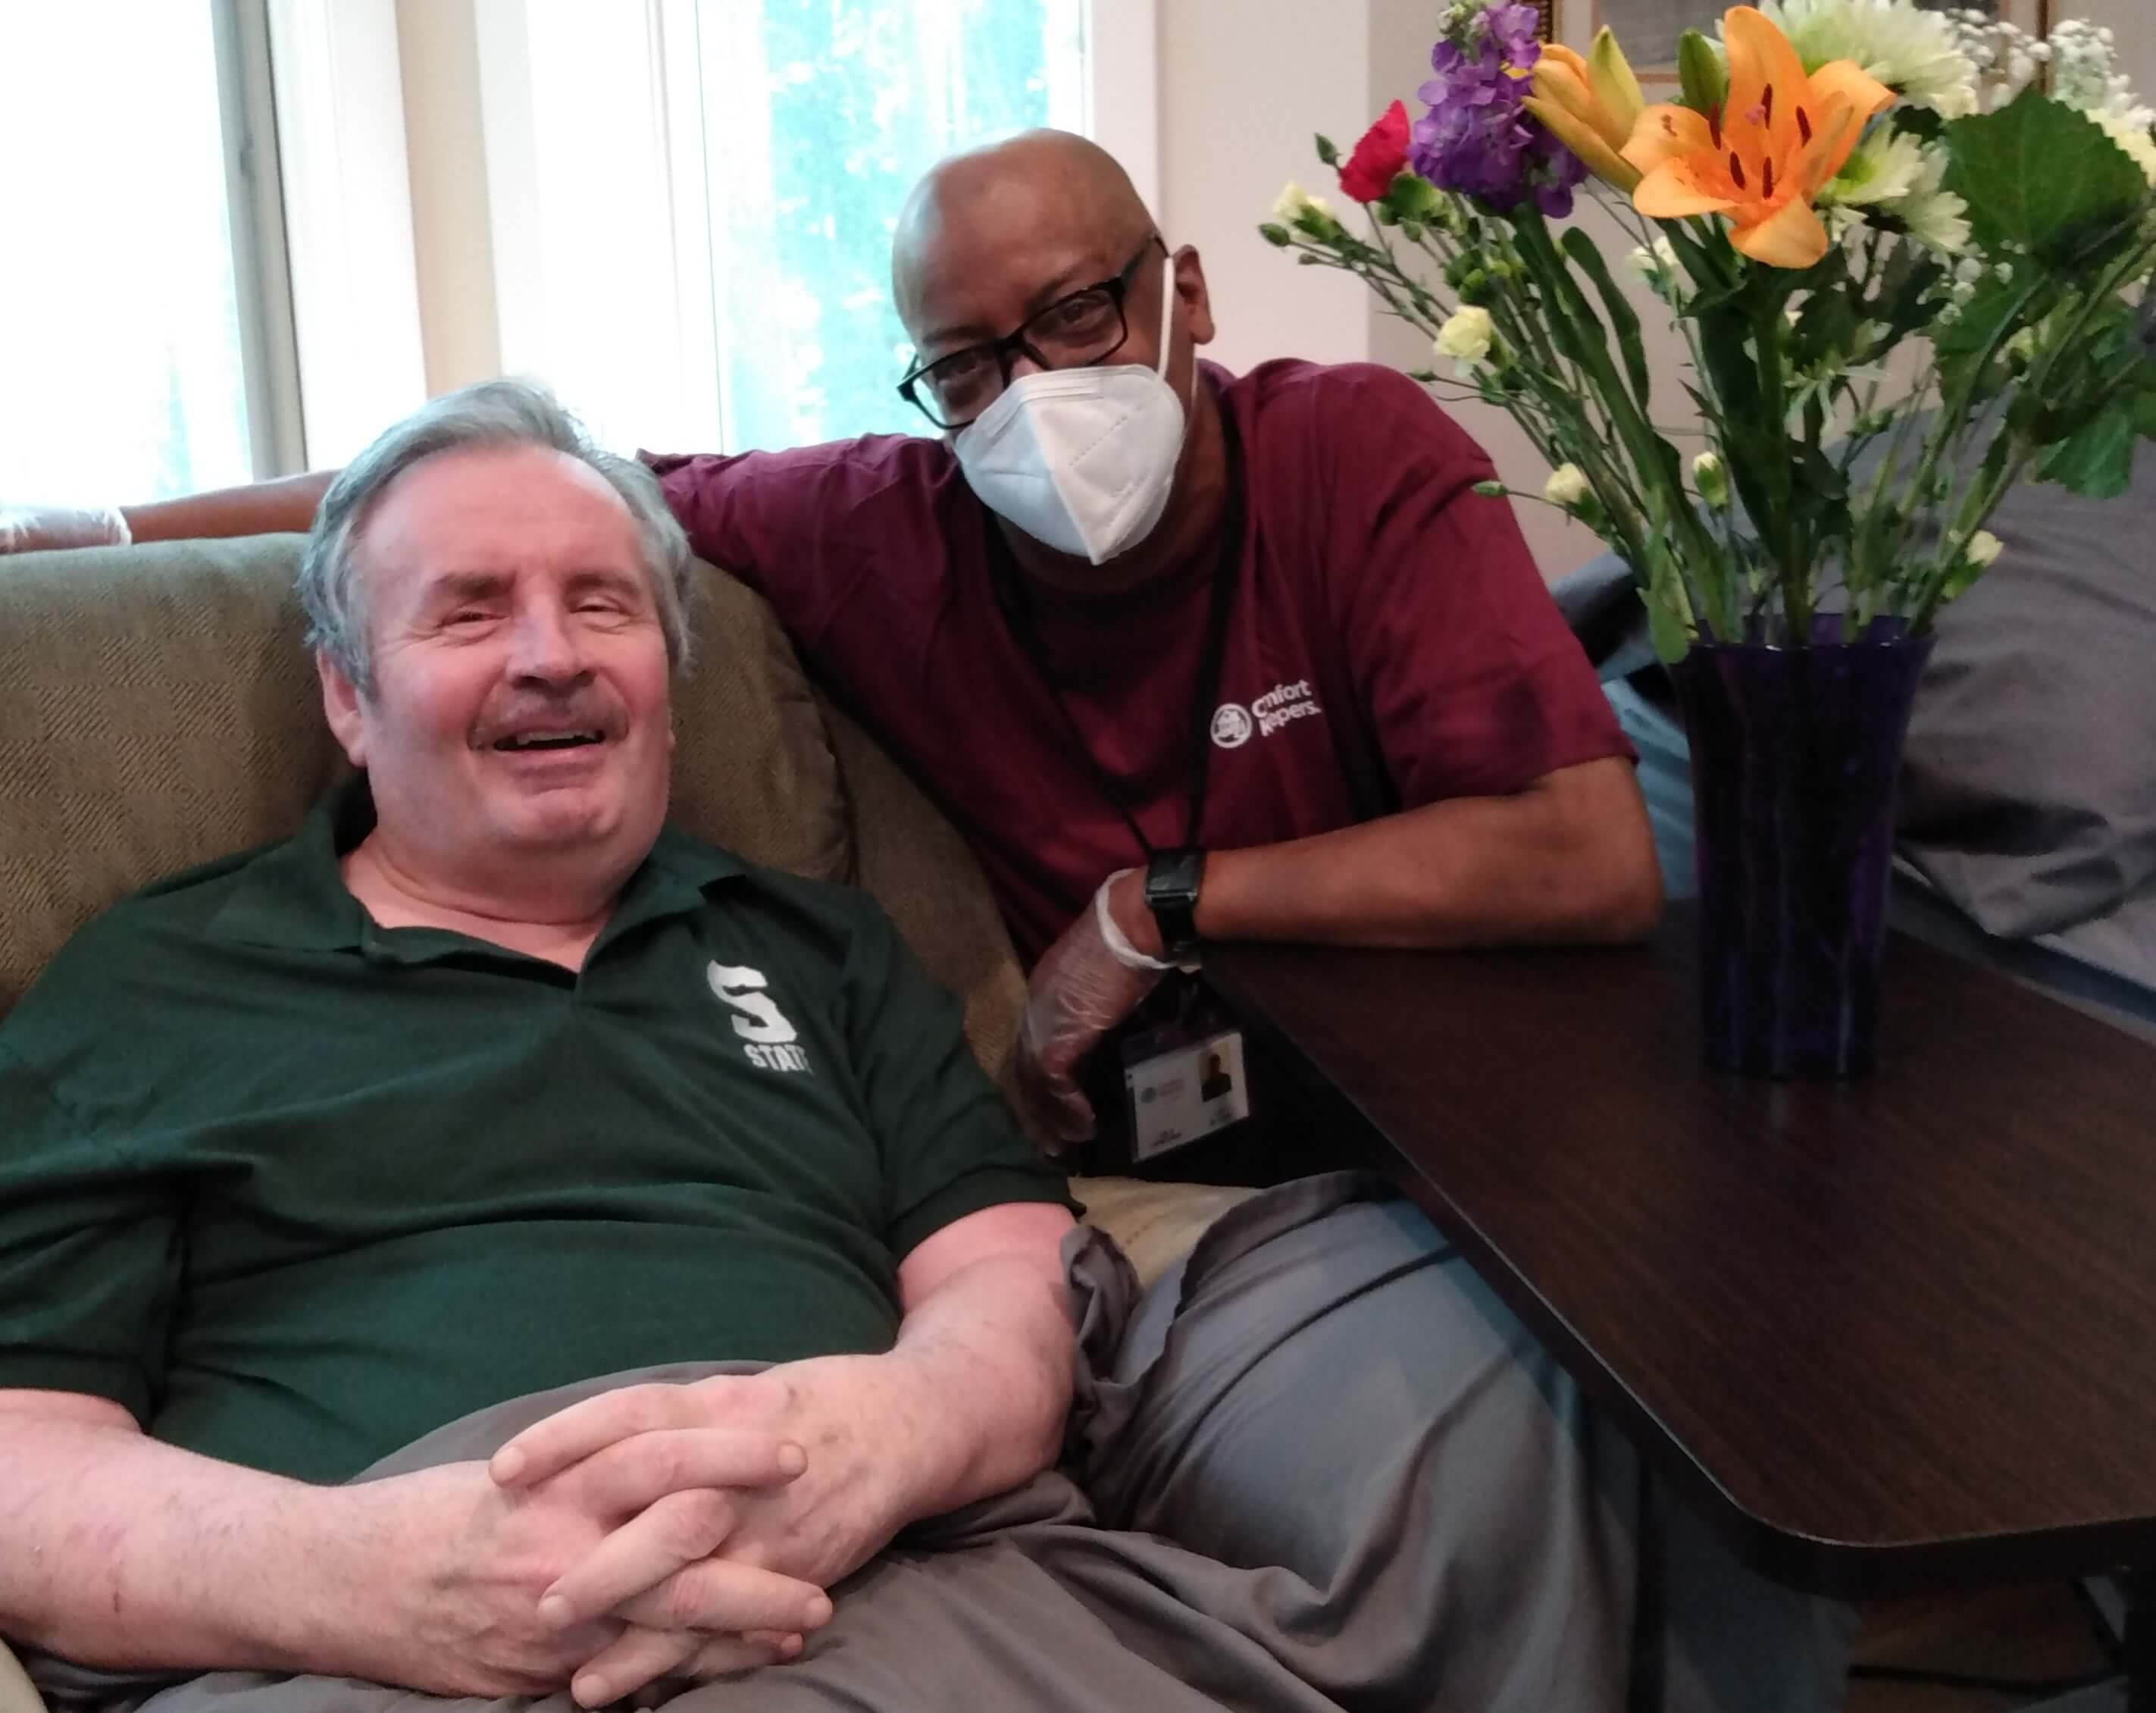 Caregiver and senior client in client's home